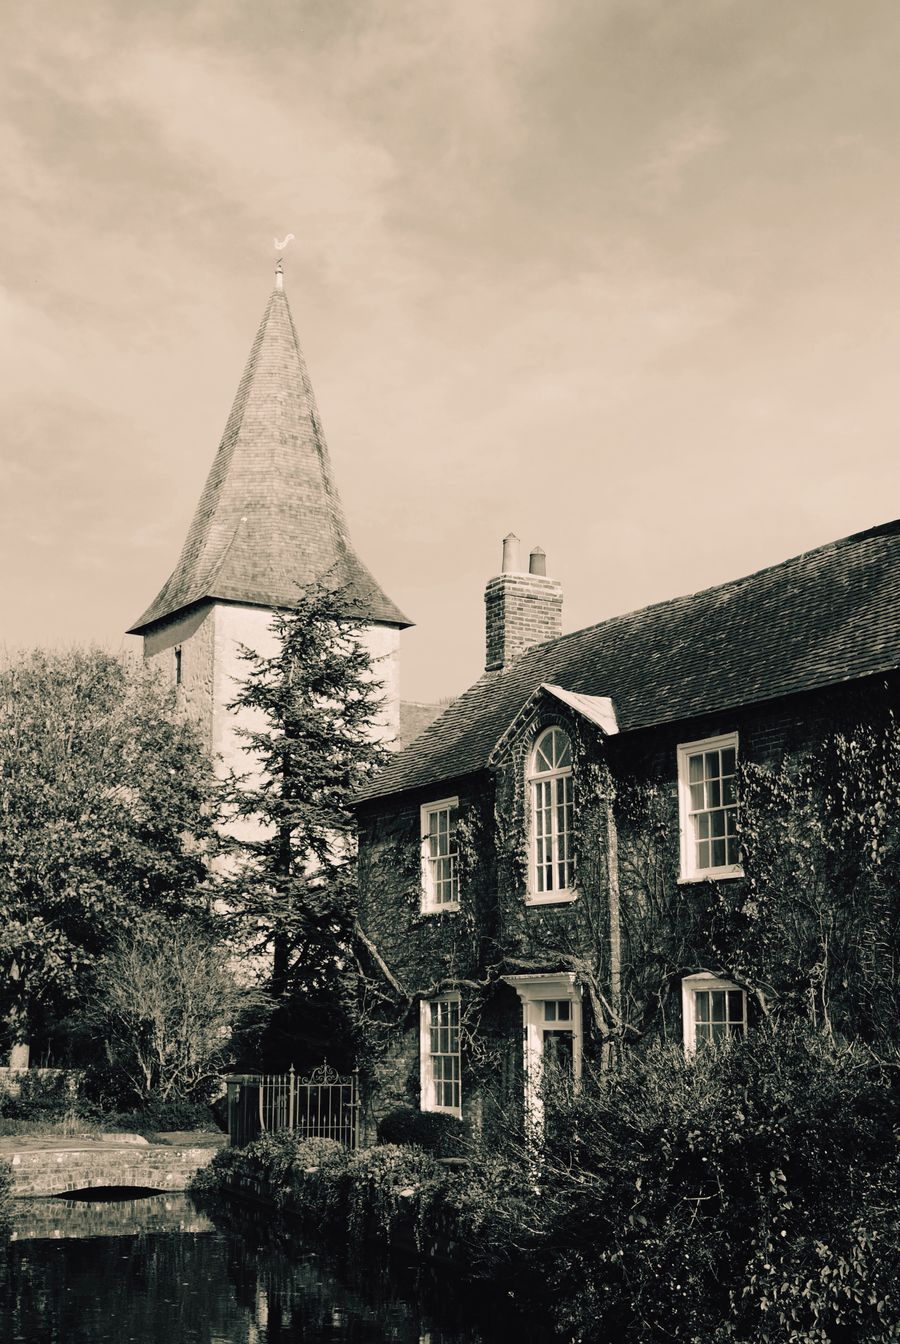 Old Buildings Stream Church Churches Blackandwhite Black And White Bosham Village Waterside Picturesque Picturesquevillages Street Scene